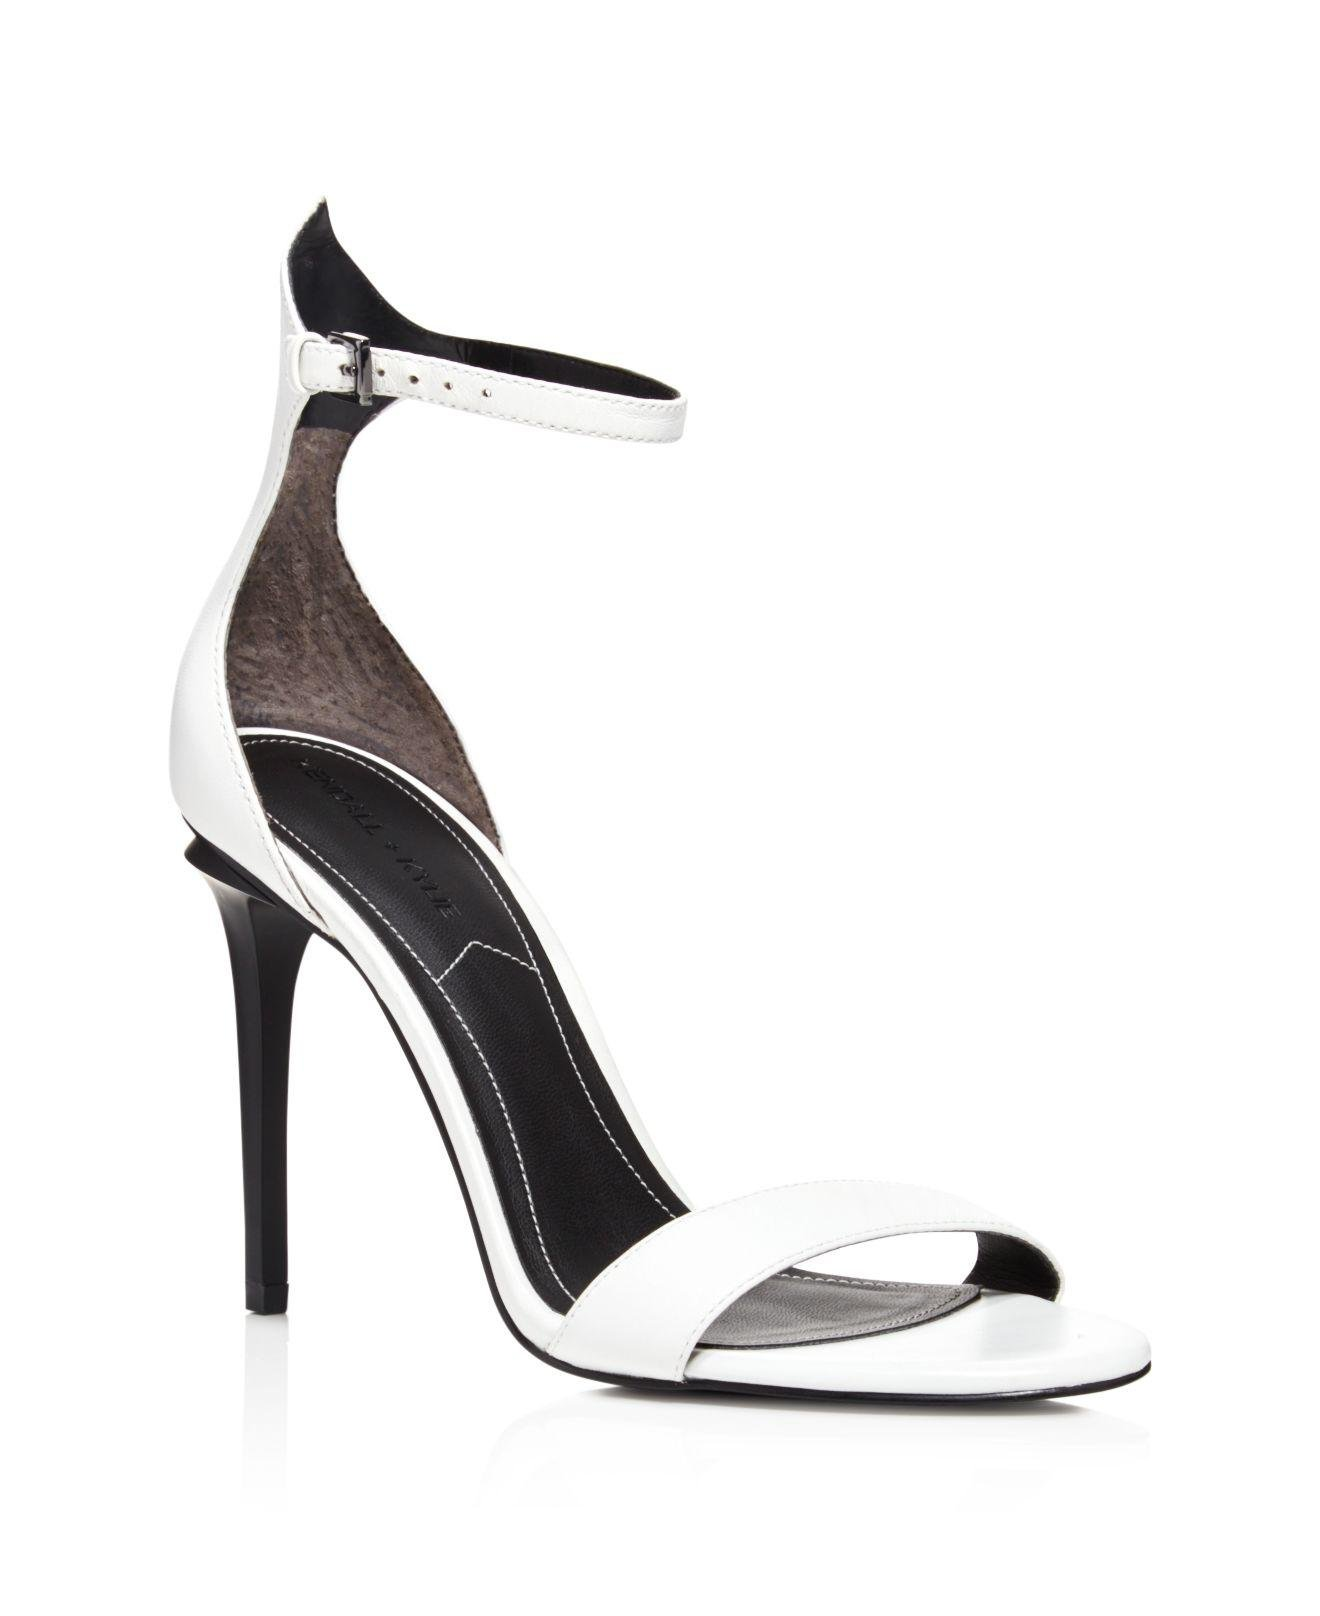 KENDALL and KYLIE Elin Ankle Strap High Heel Sandals - 100% Exclusive Women